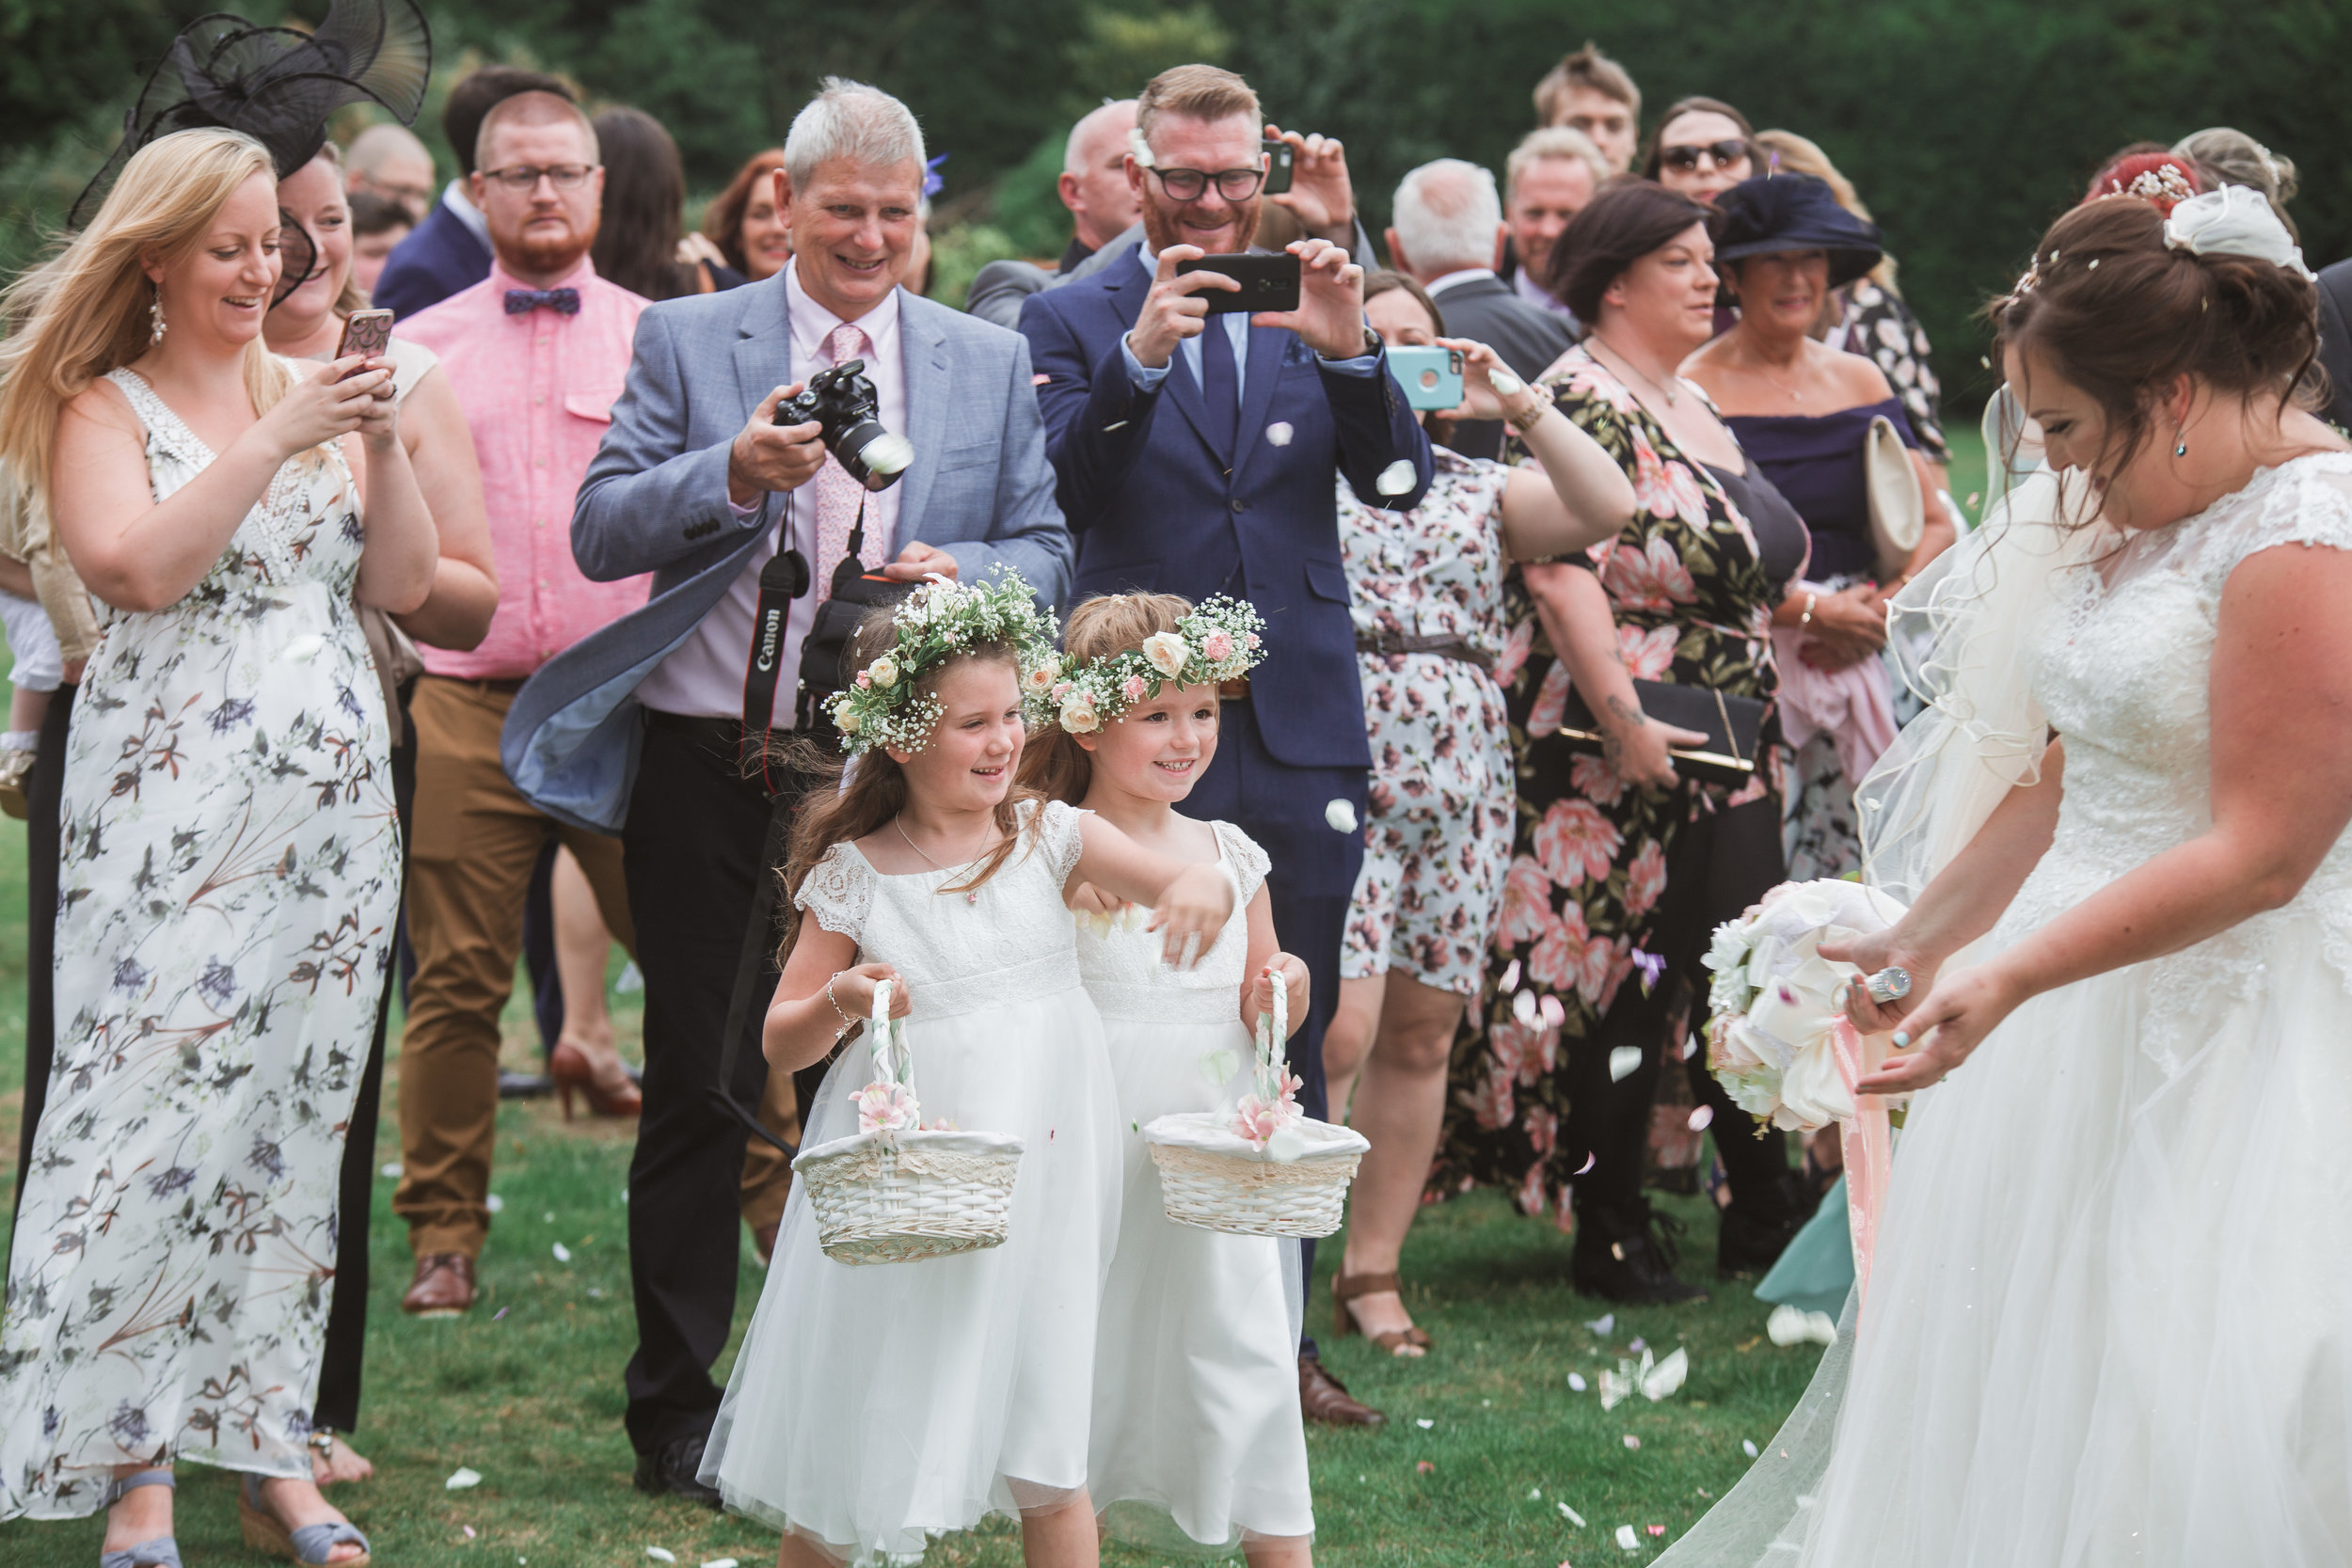 Partridge_Wedding-20180818-0378.jpg